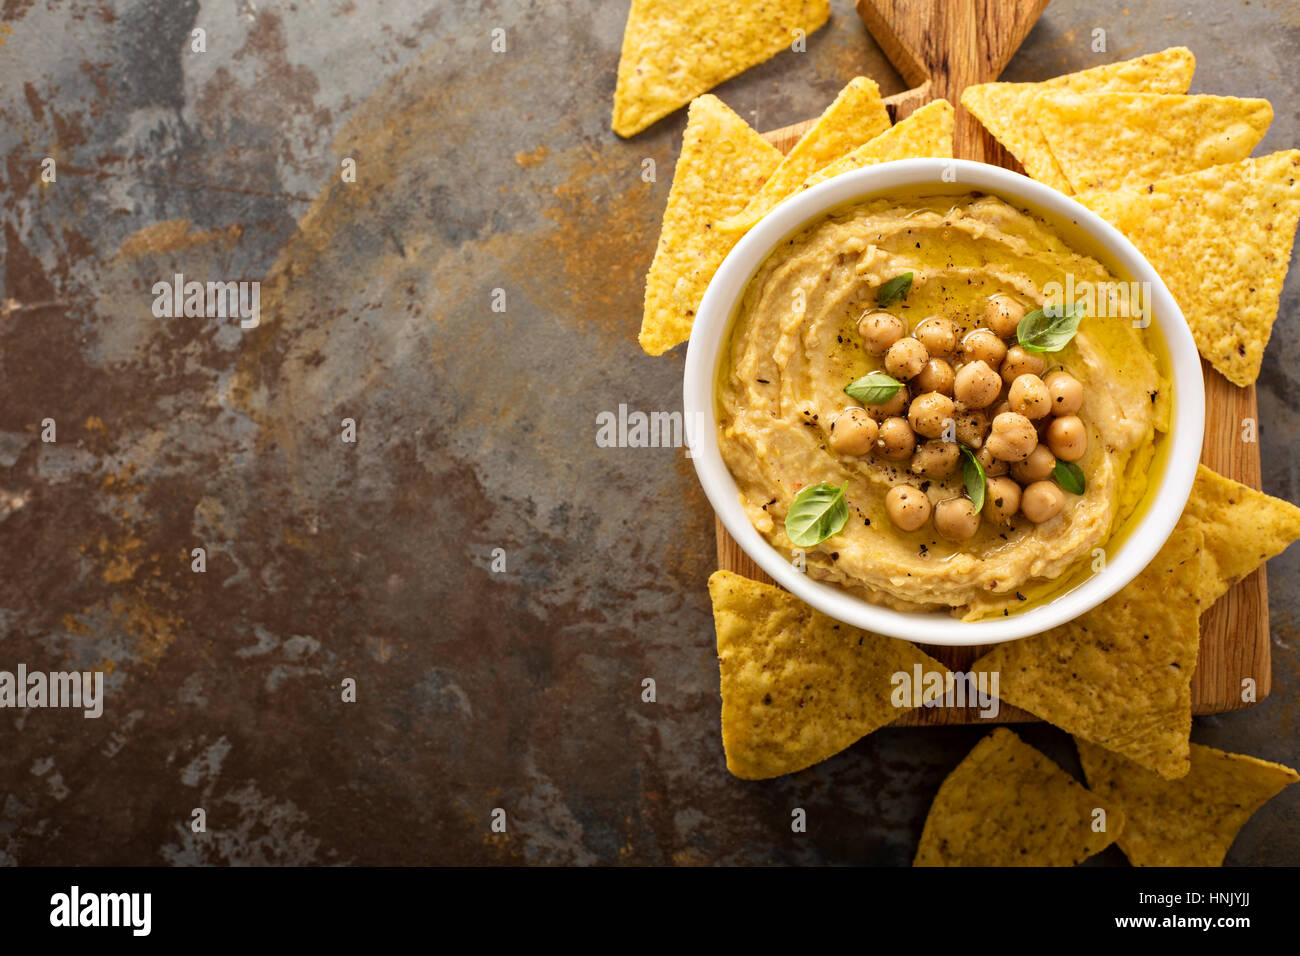 Homemade hummus with tortilla chips overhead shot - Stock Image